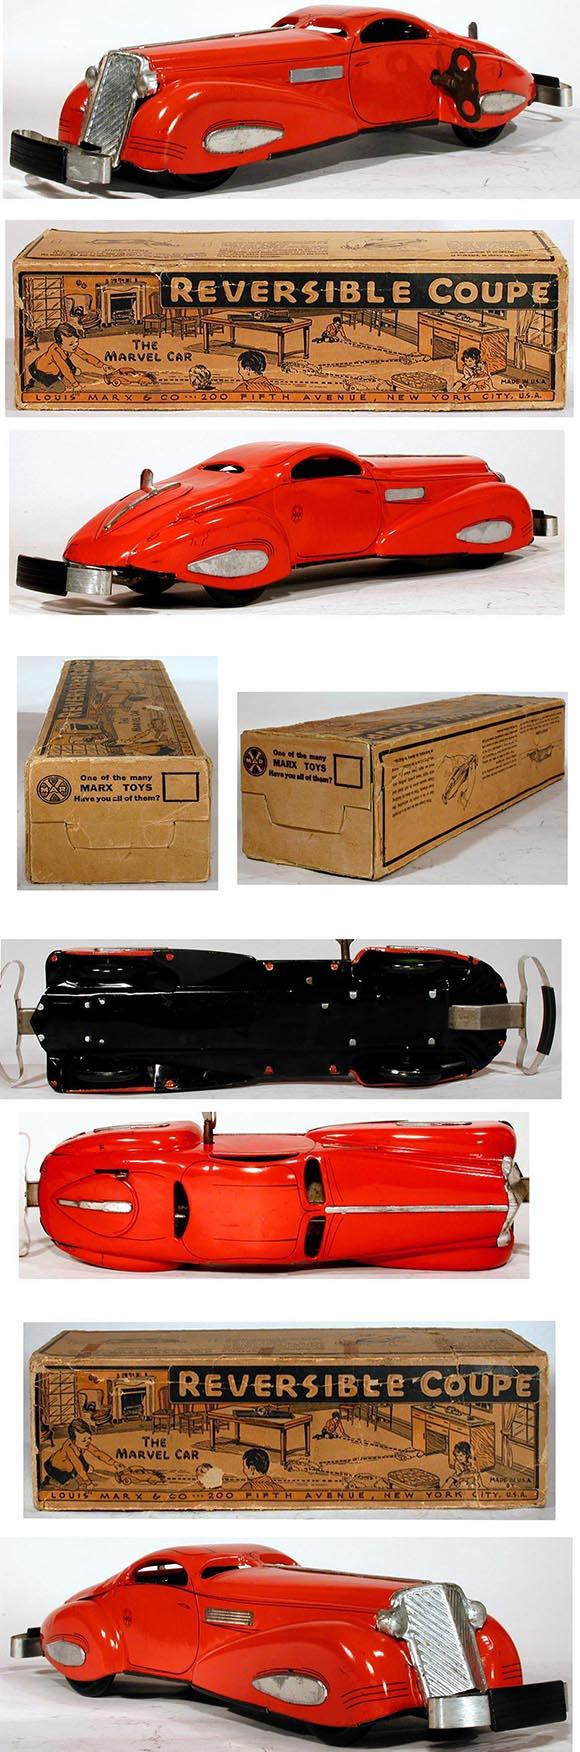 1936 Marx, Reversible Coupe The Marvel Car in Original Box